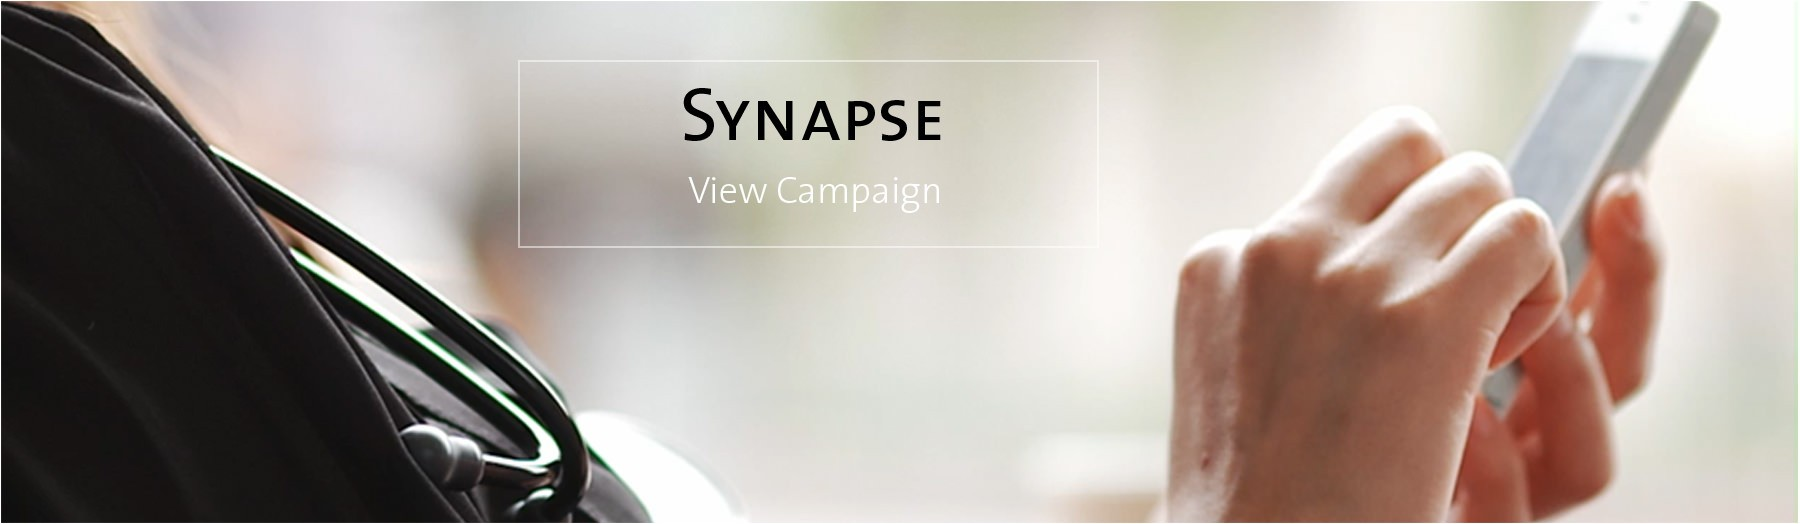 Tell Agency work - Synapse